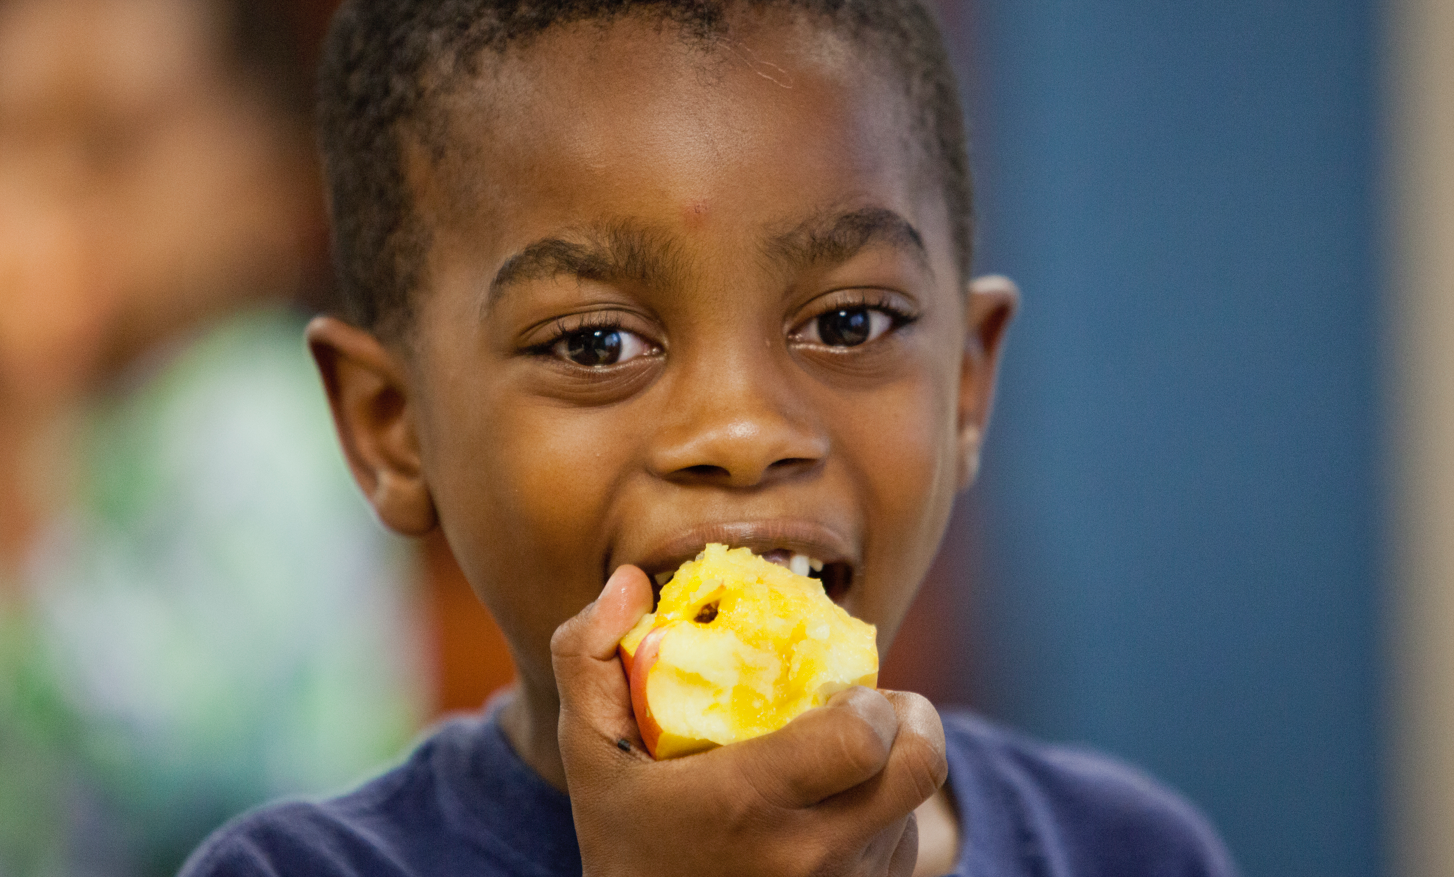 Provide Meals for Kids This Summer